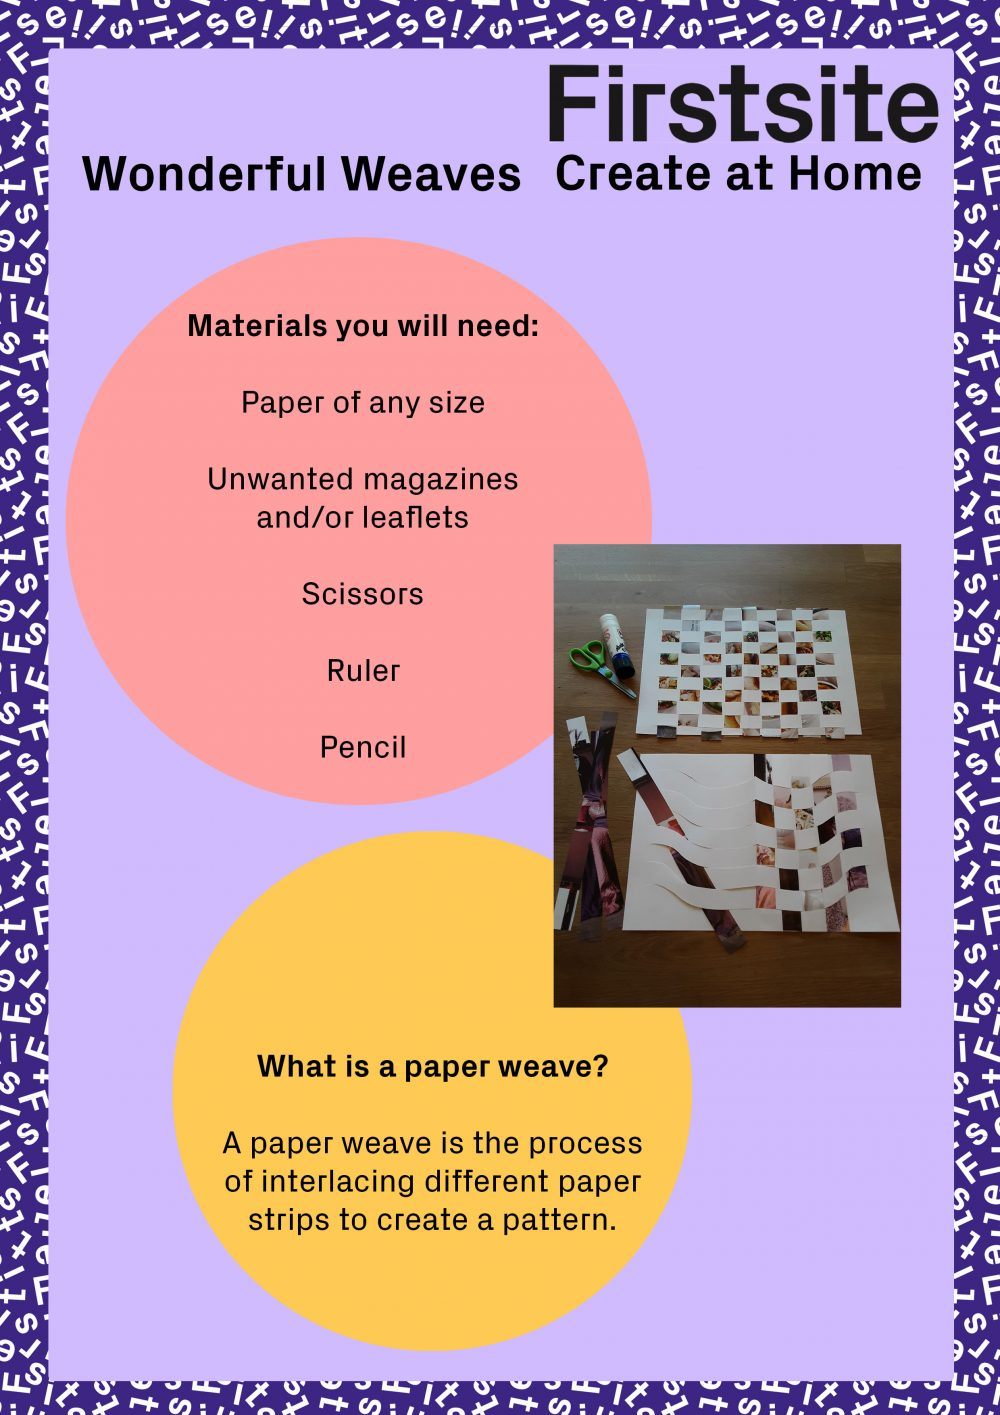 instructions for how to make a paper weave